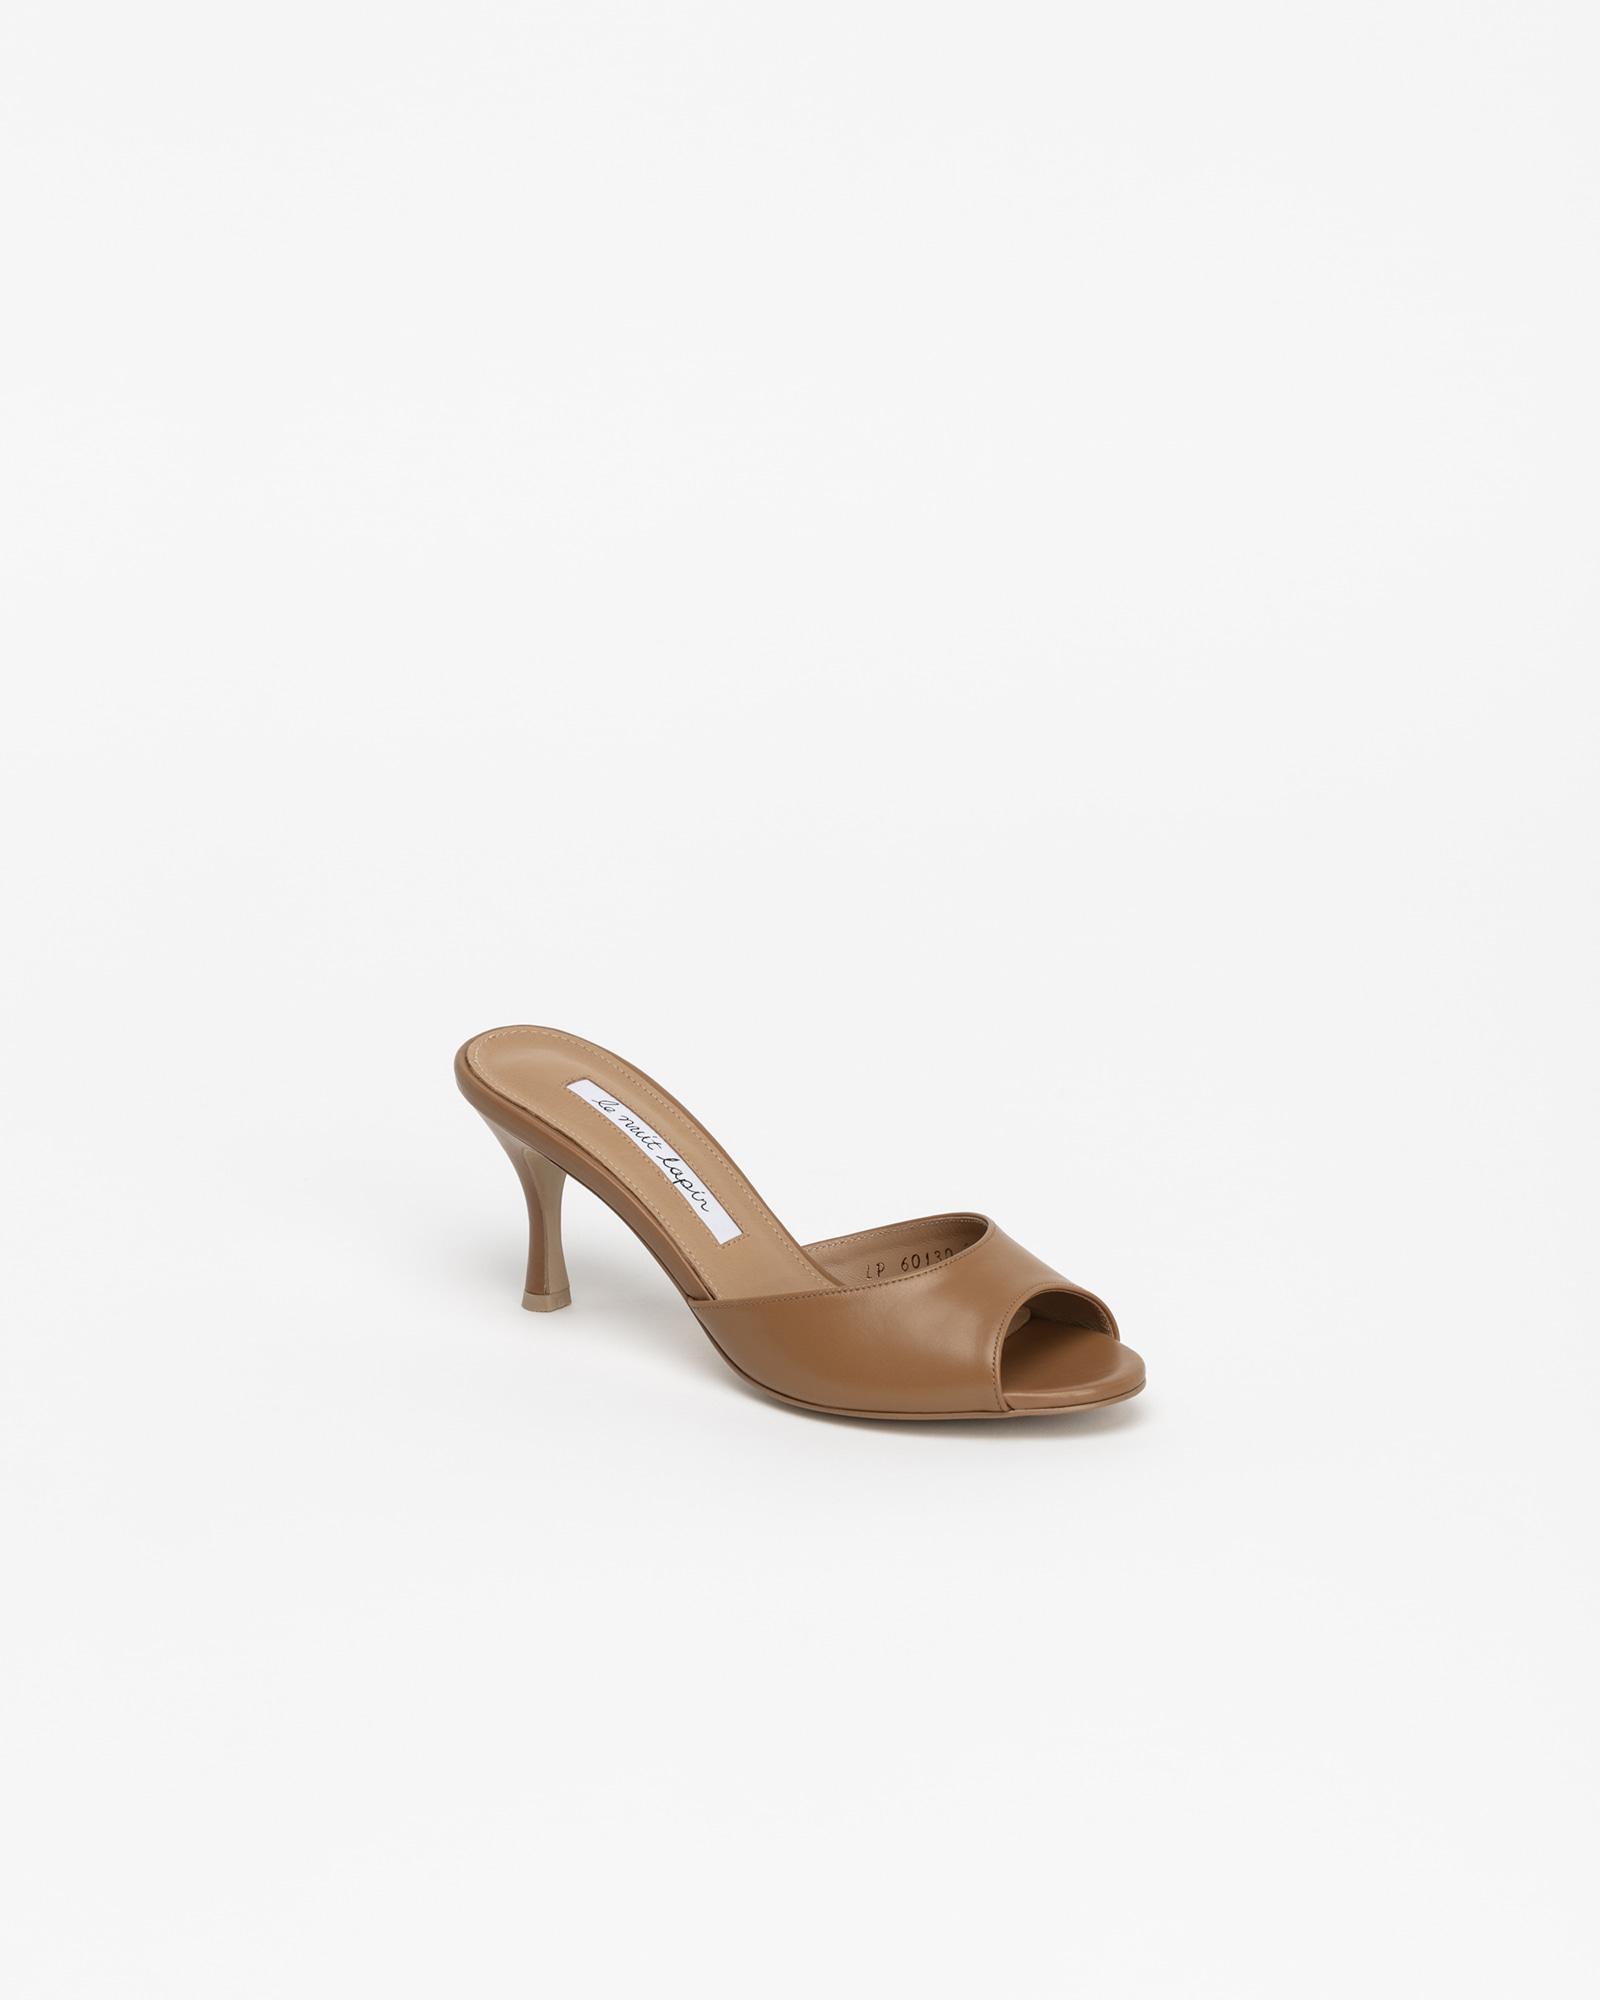 Chartres Mules in Camel Baby Calf